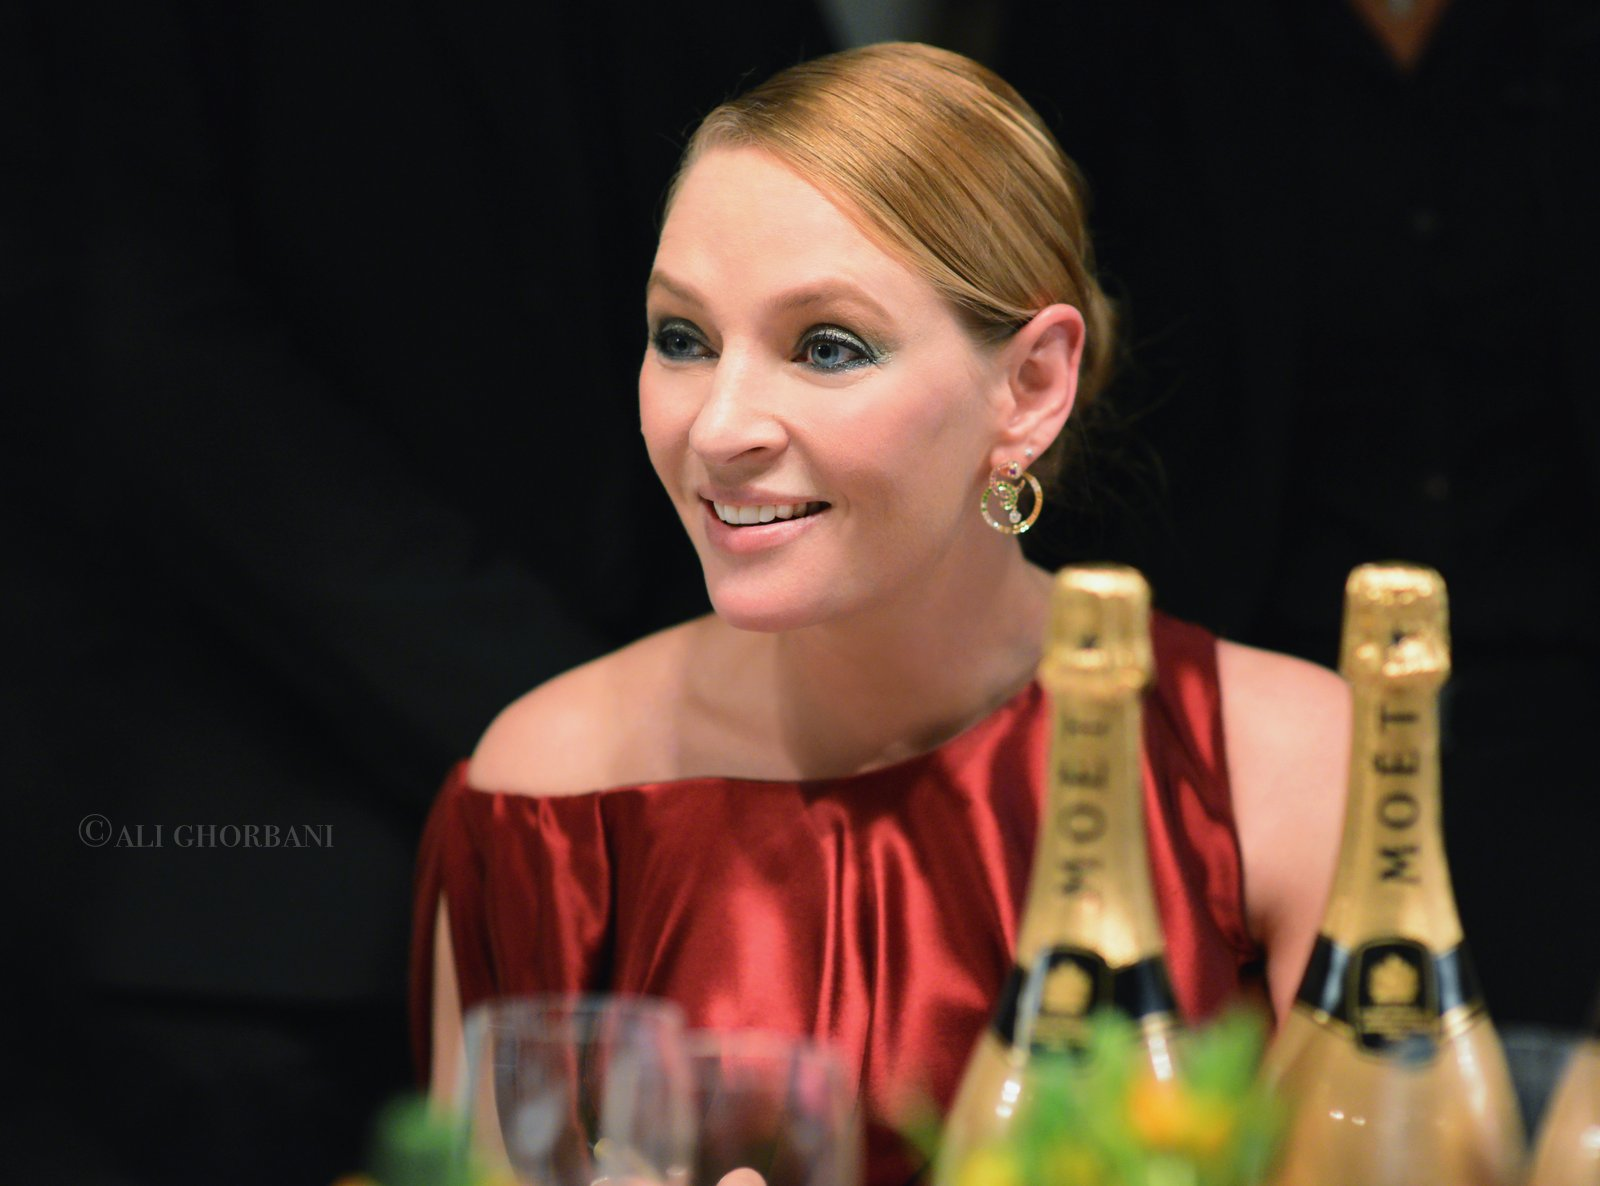 Events Photographer Hong Kong - Ip Uma Thurman